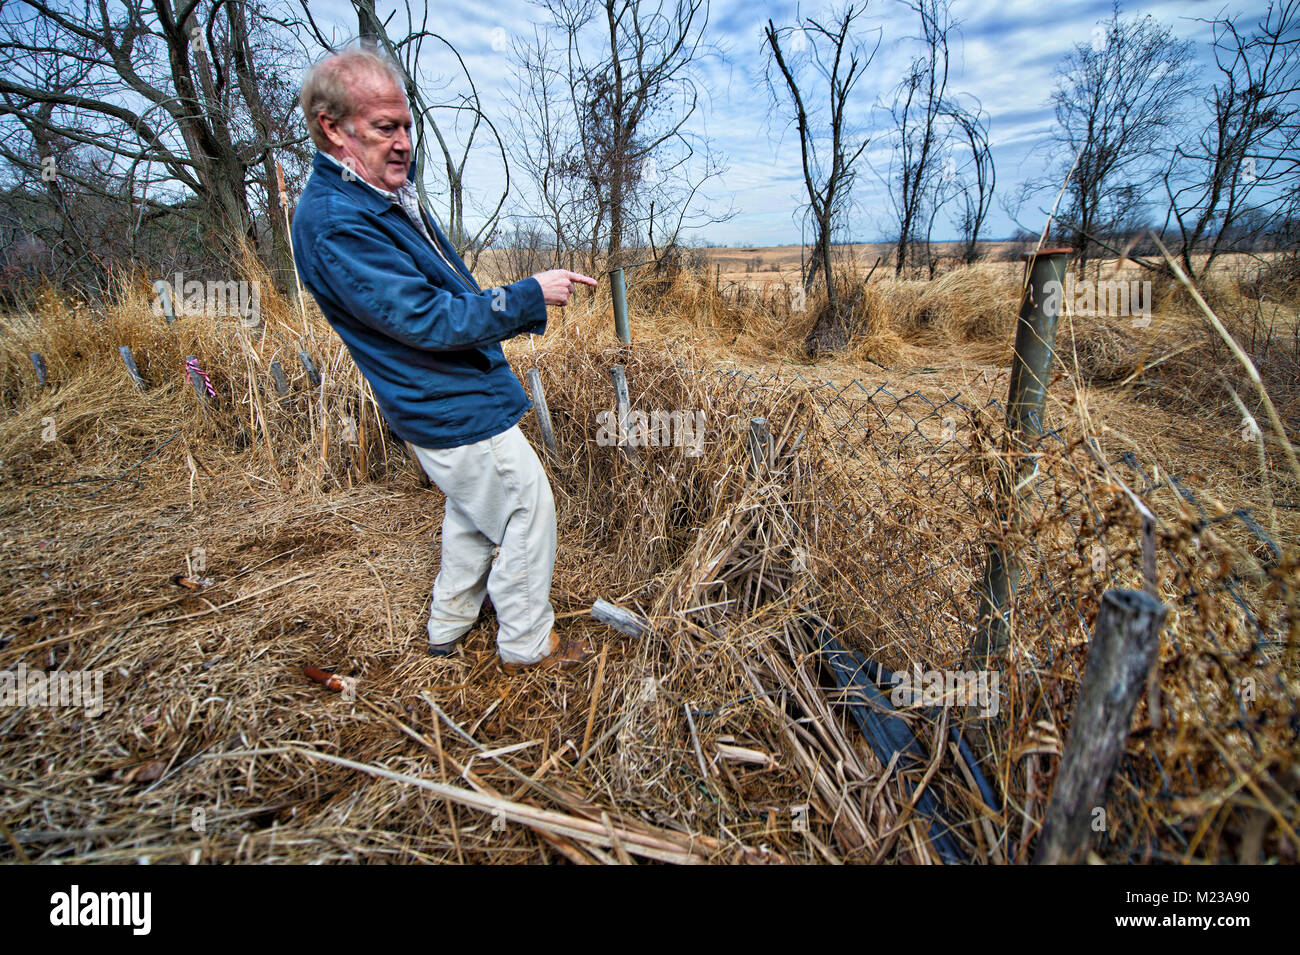 UNITED STATES: 2018: George Biller a resident of Historic Selma Estates stands in a drainage area that he says does - Stock Image